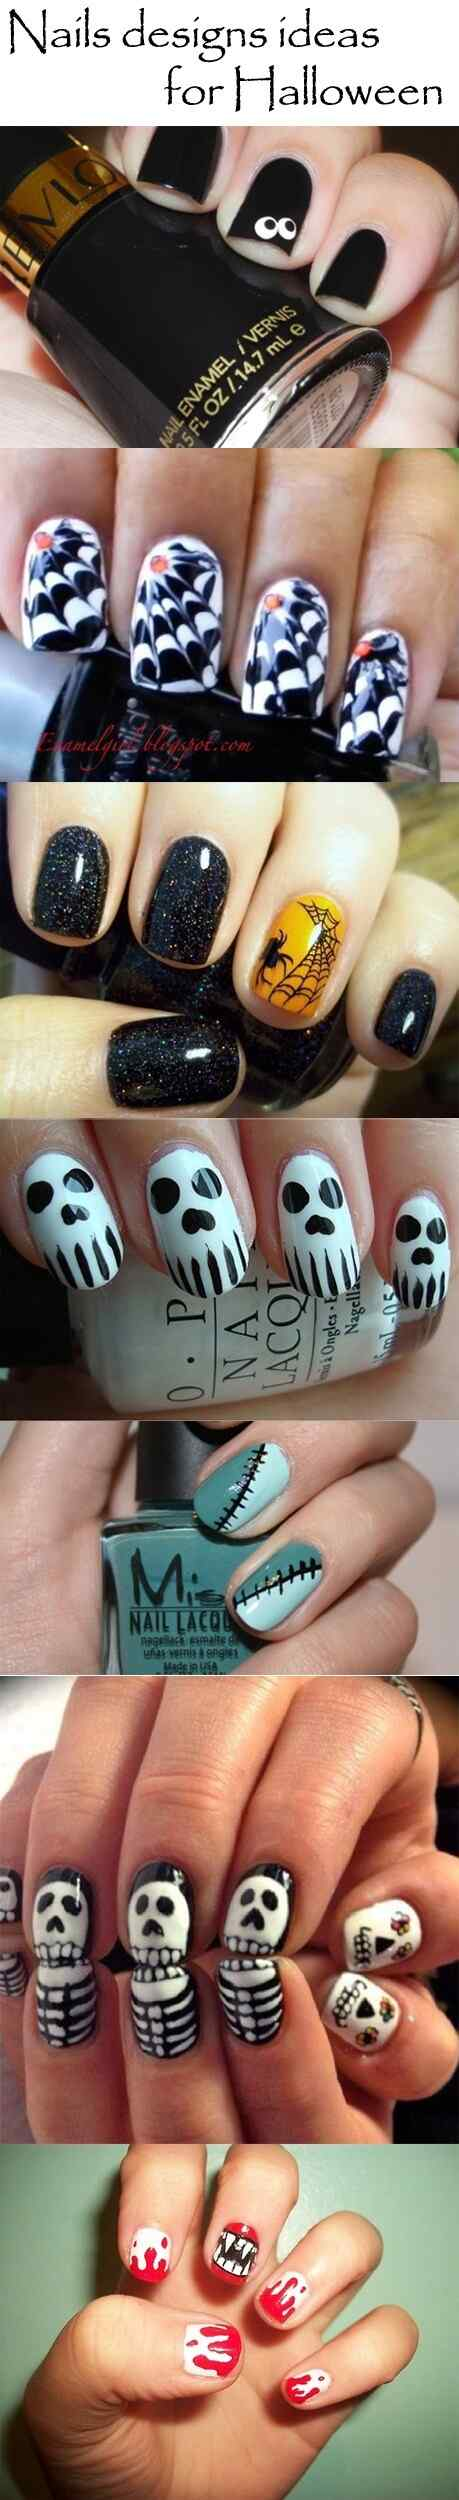 Ideas pintar unas halloween (26)